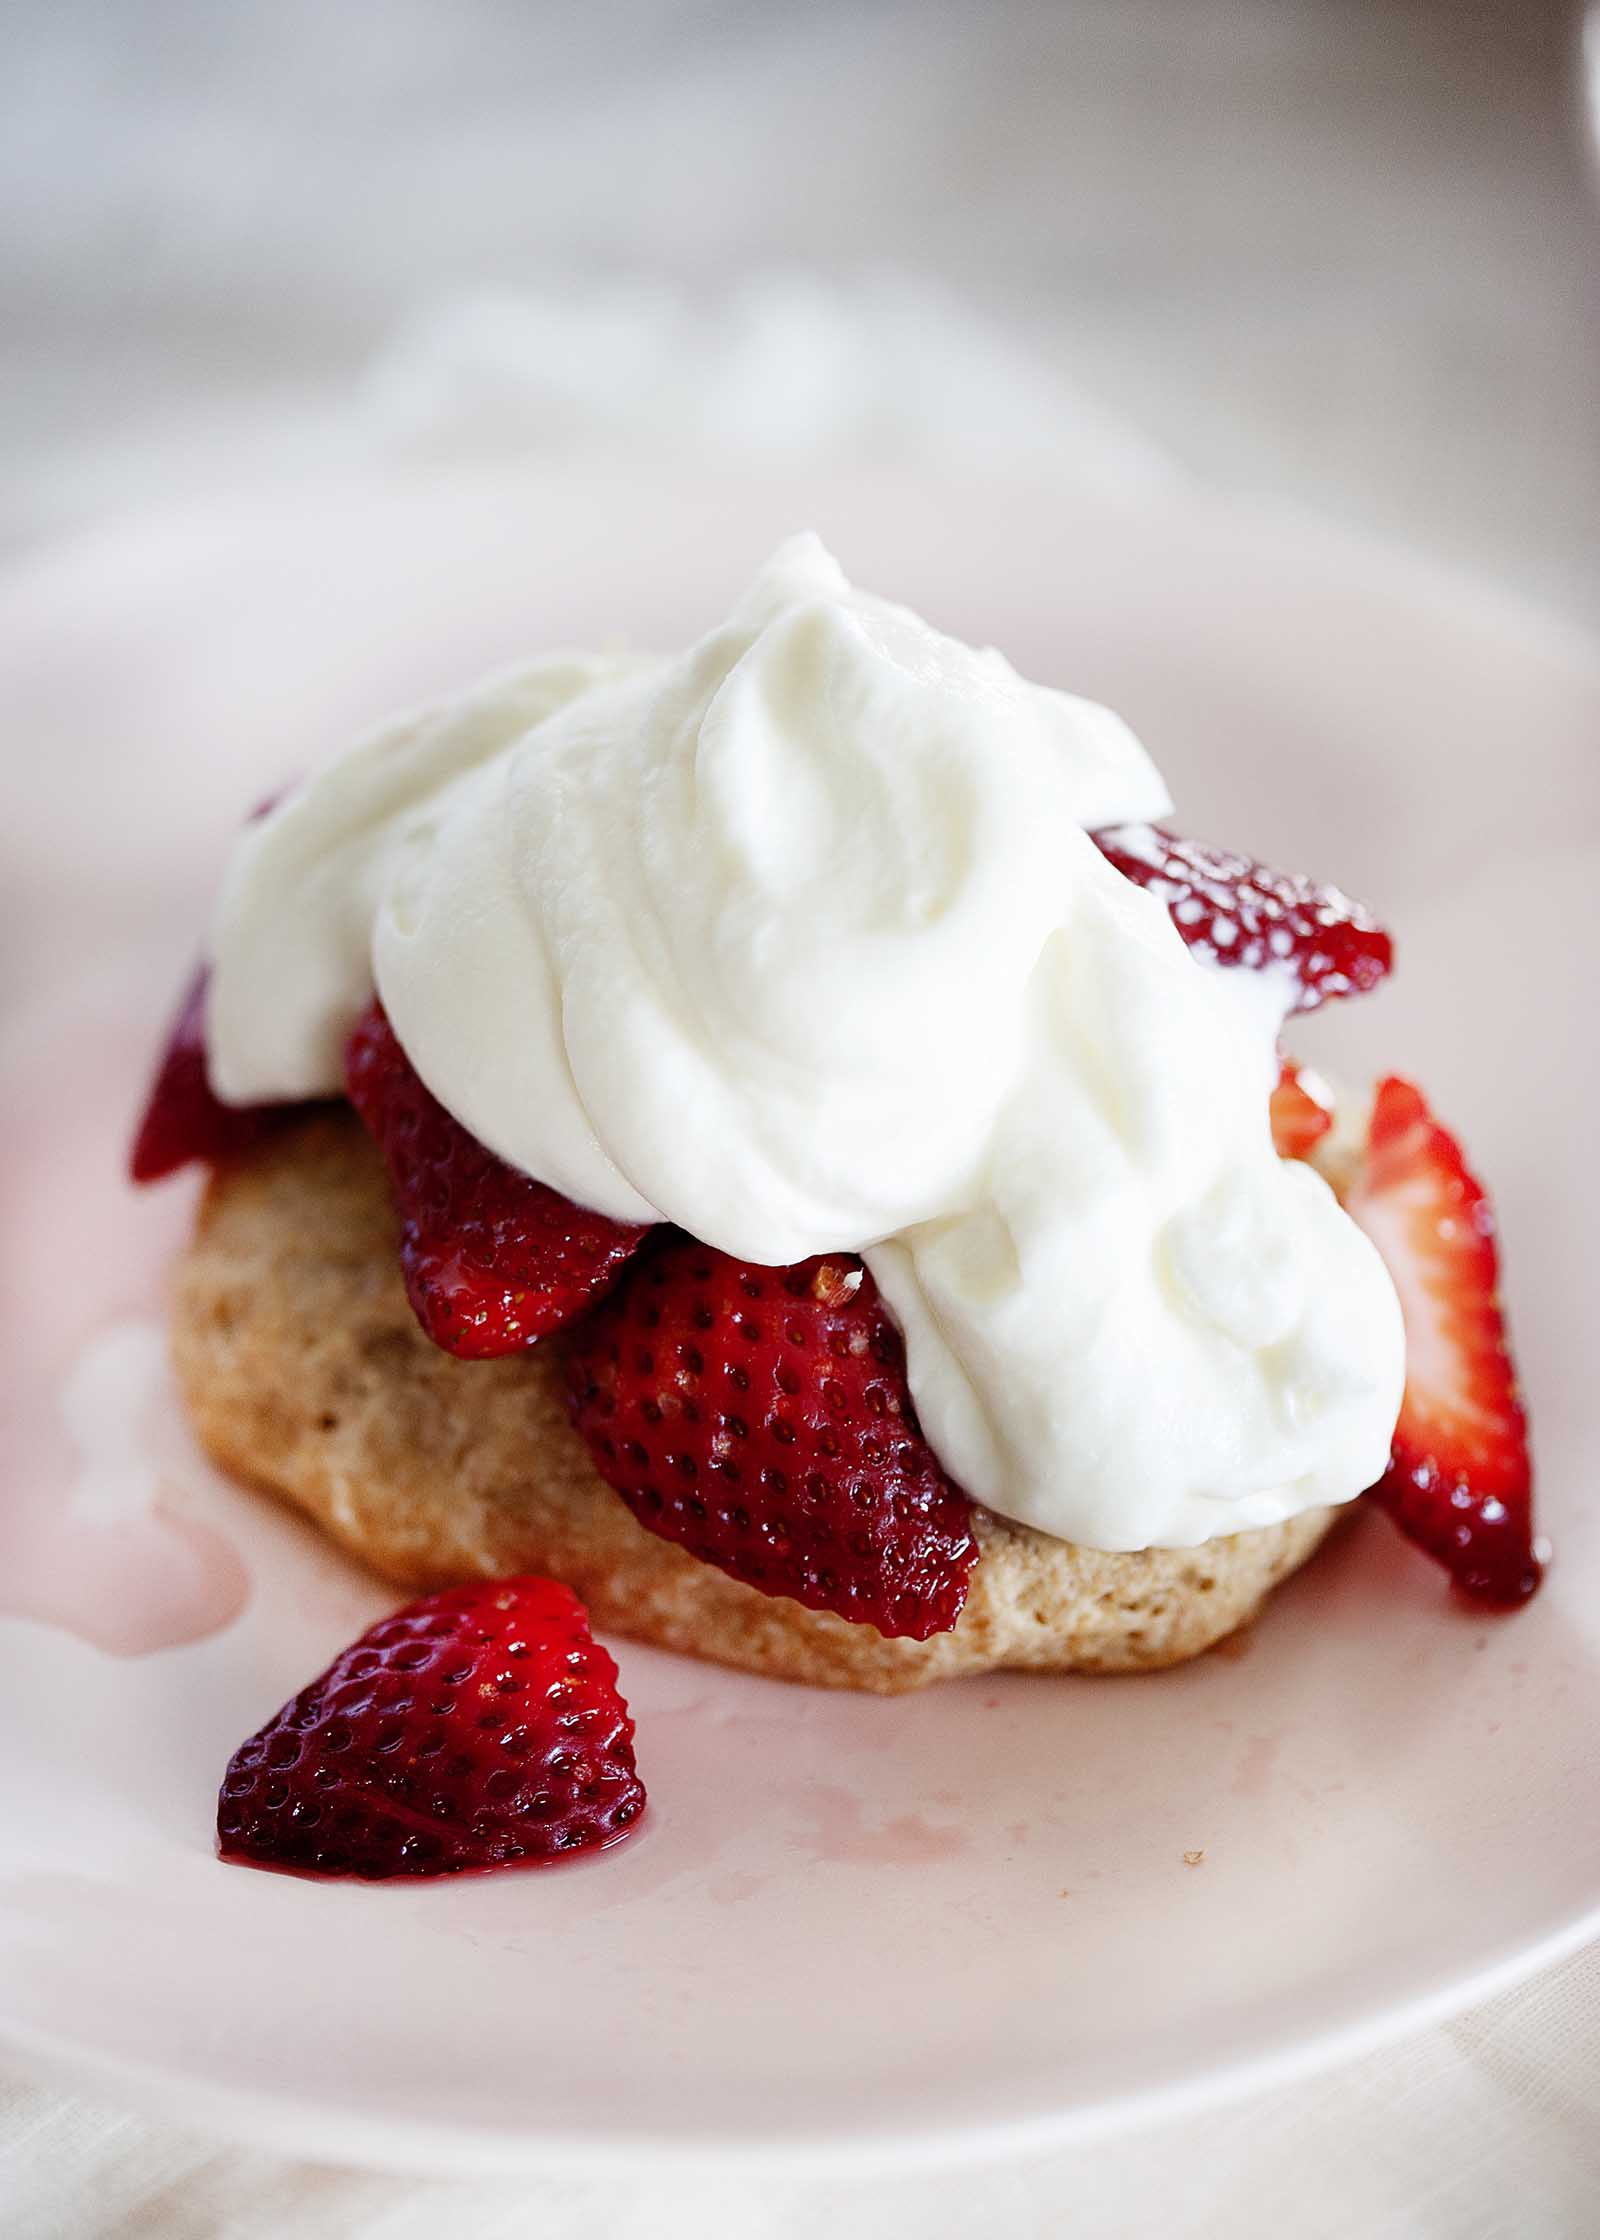 Close up of open-faced strawberry shortcake with sliced strawberries and whipped yogurt topping.